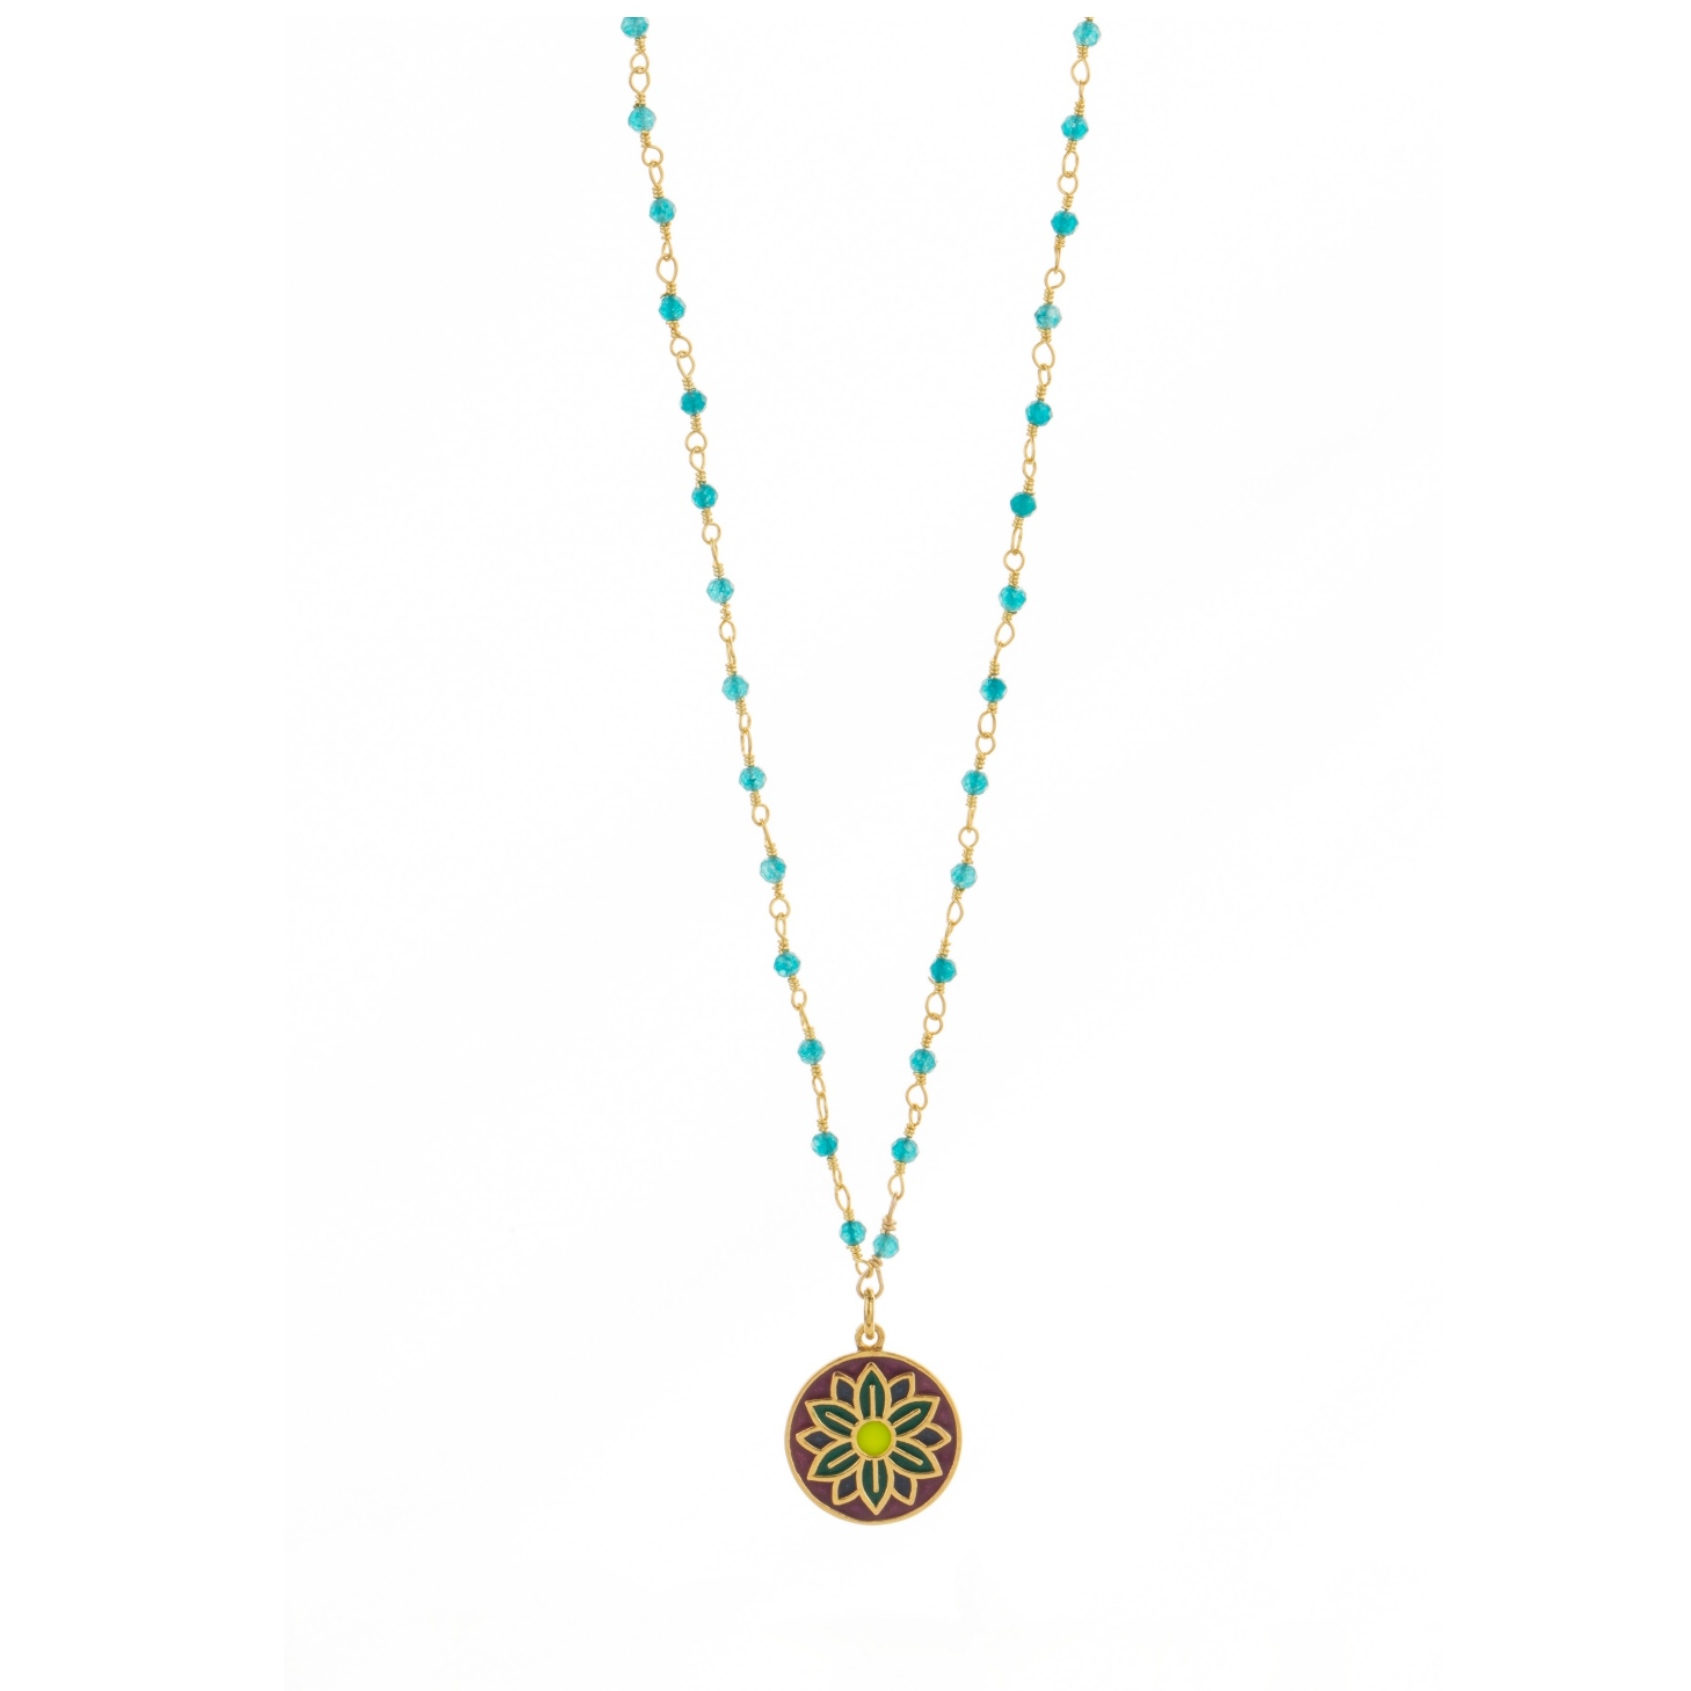 Une a Une - Necklace Jaipur Turquoise CPJB